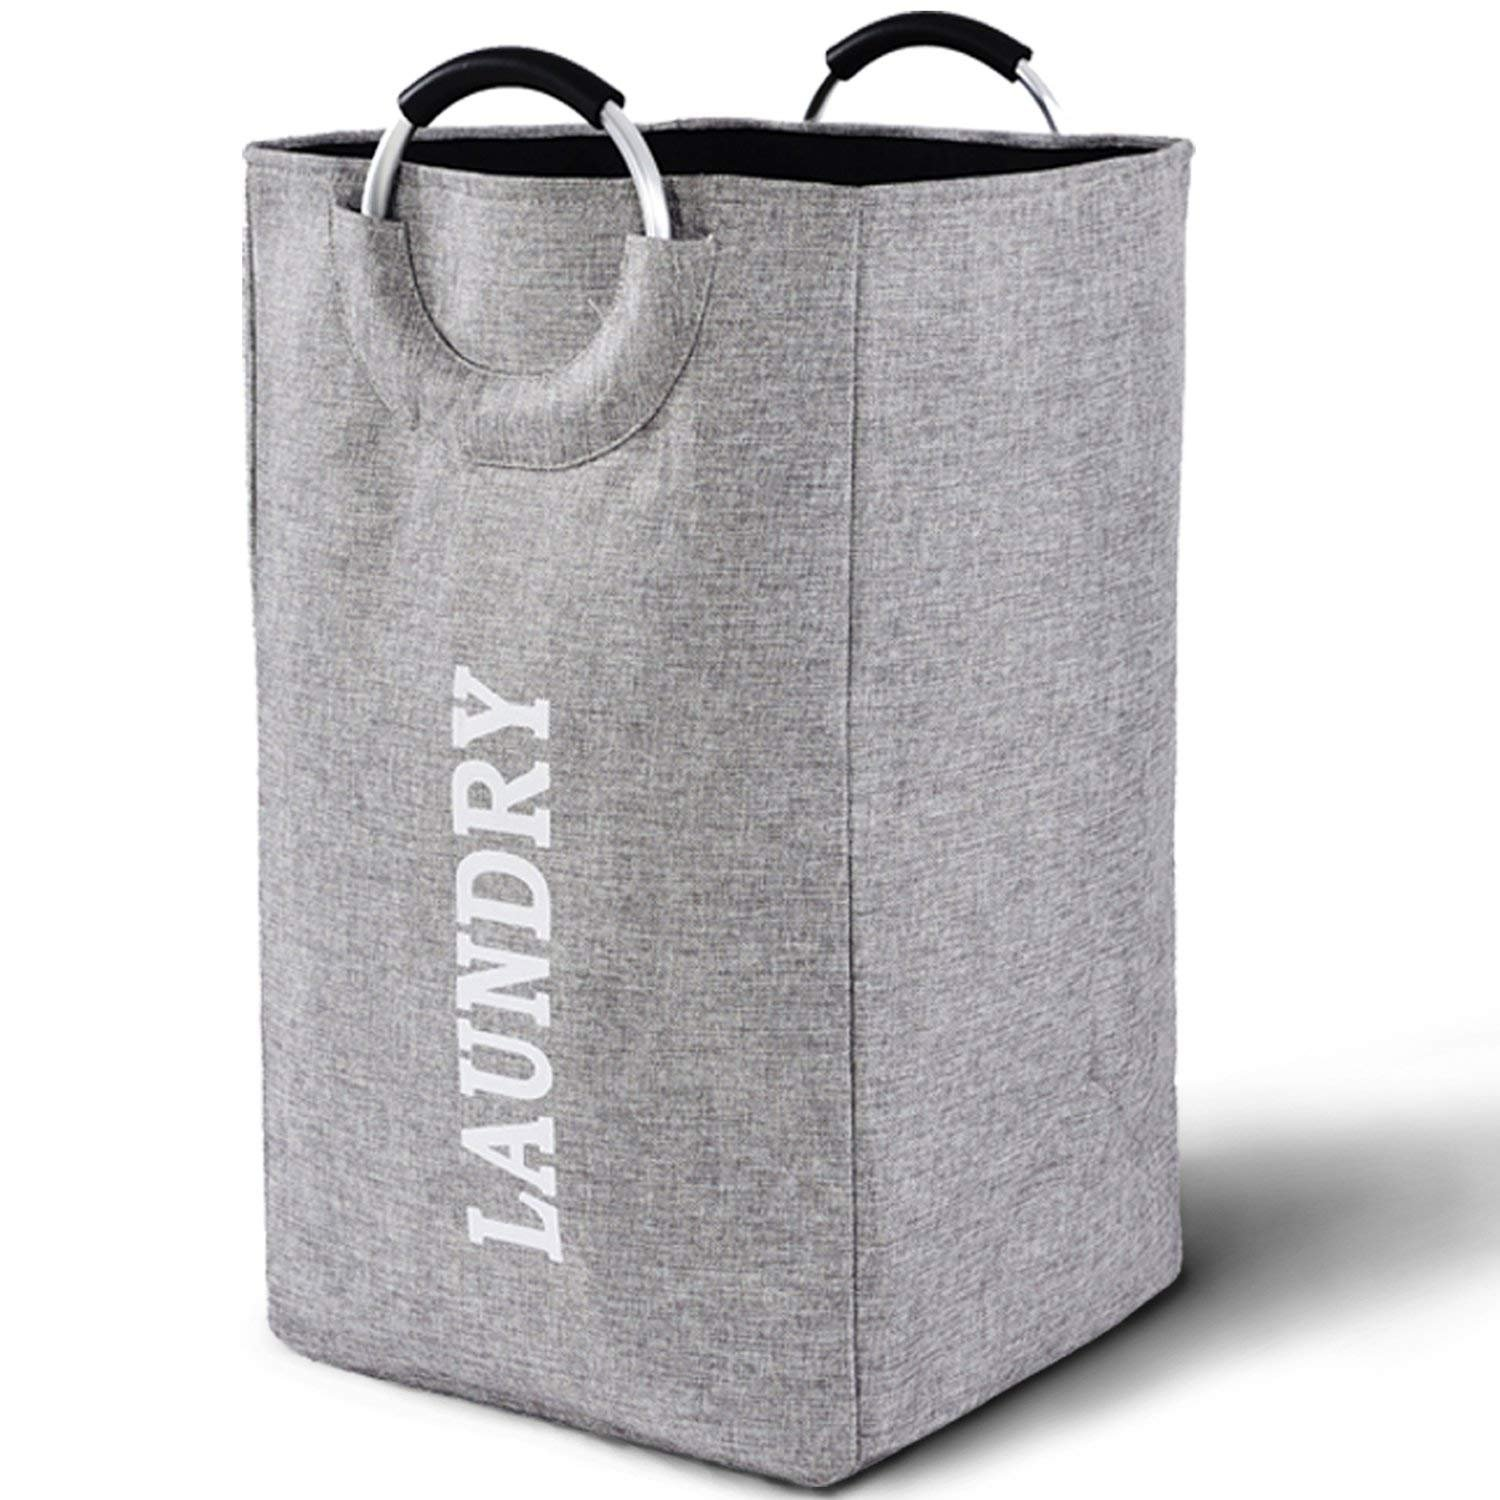 Gray Eco-Fabric Foldable Laundry Tote